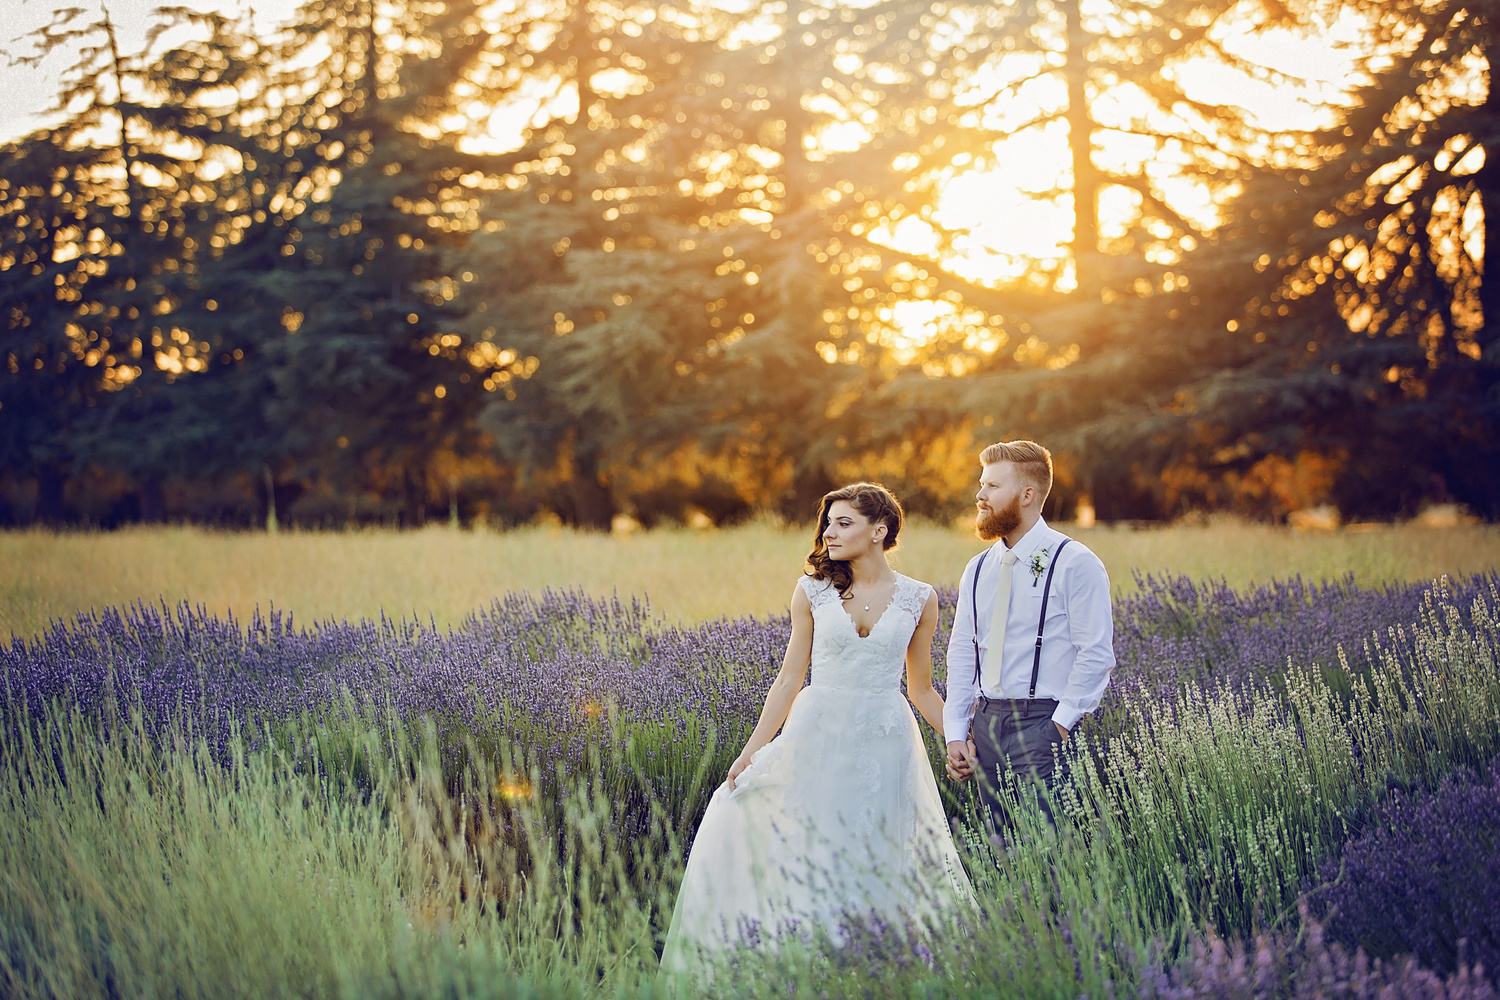 Lavender Love by Matthew Reiter